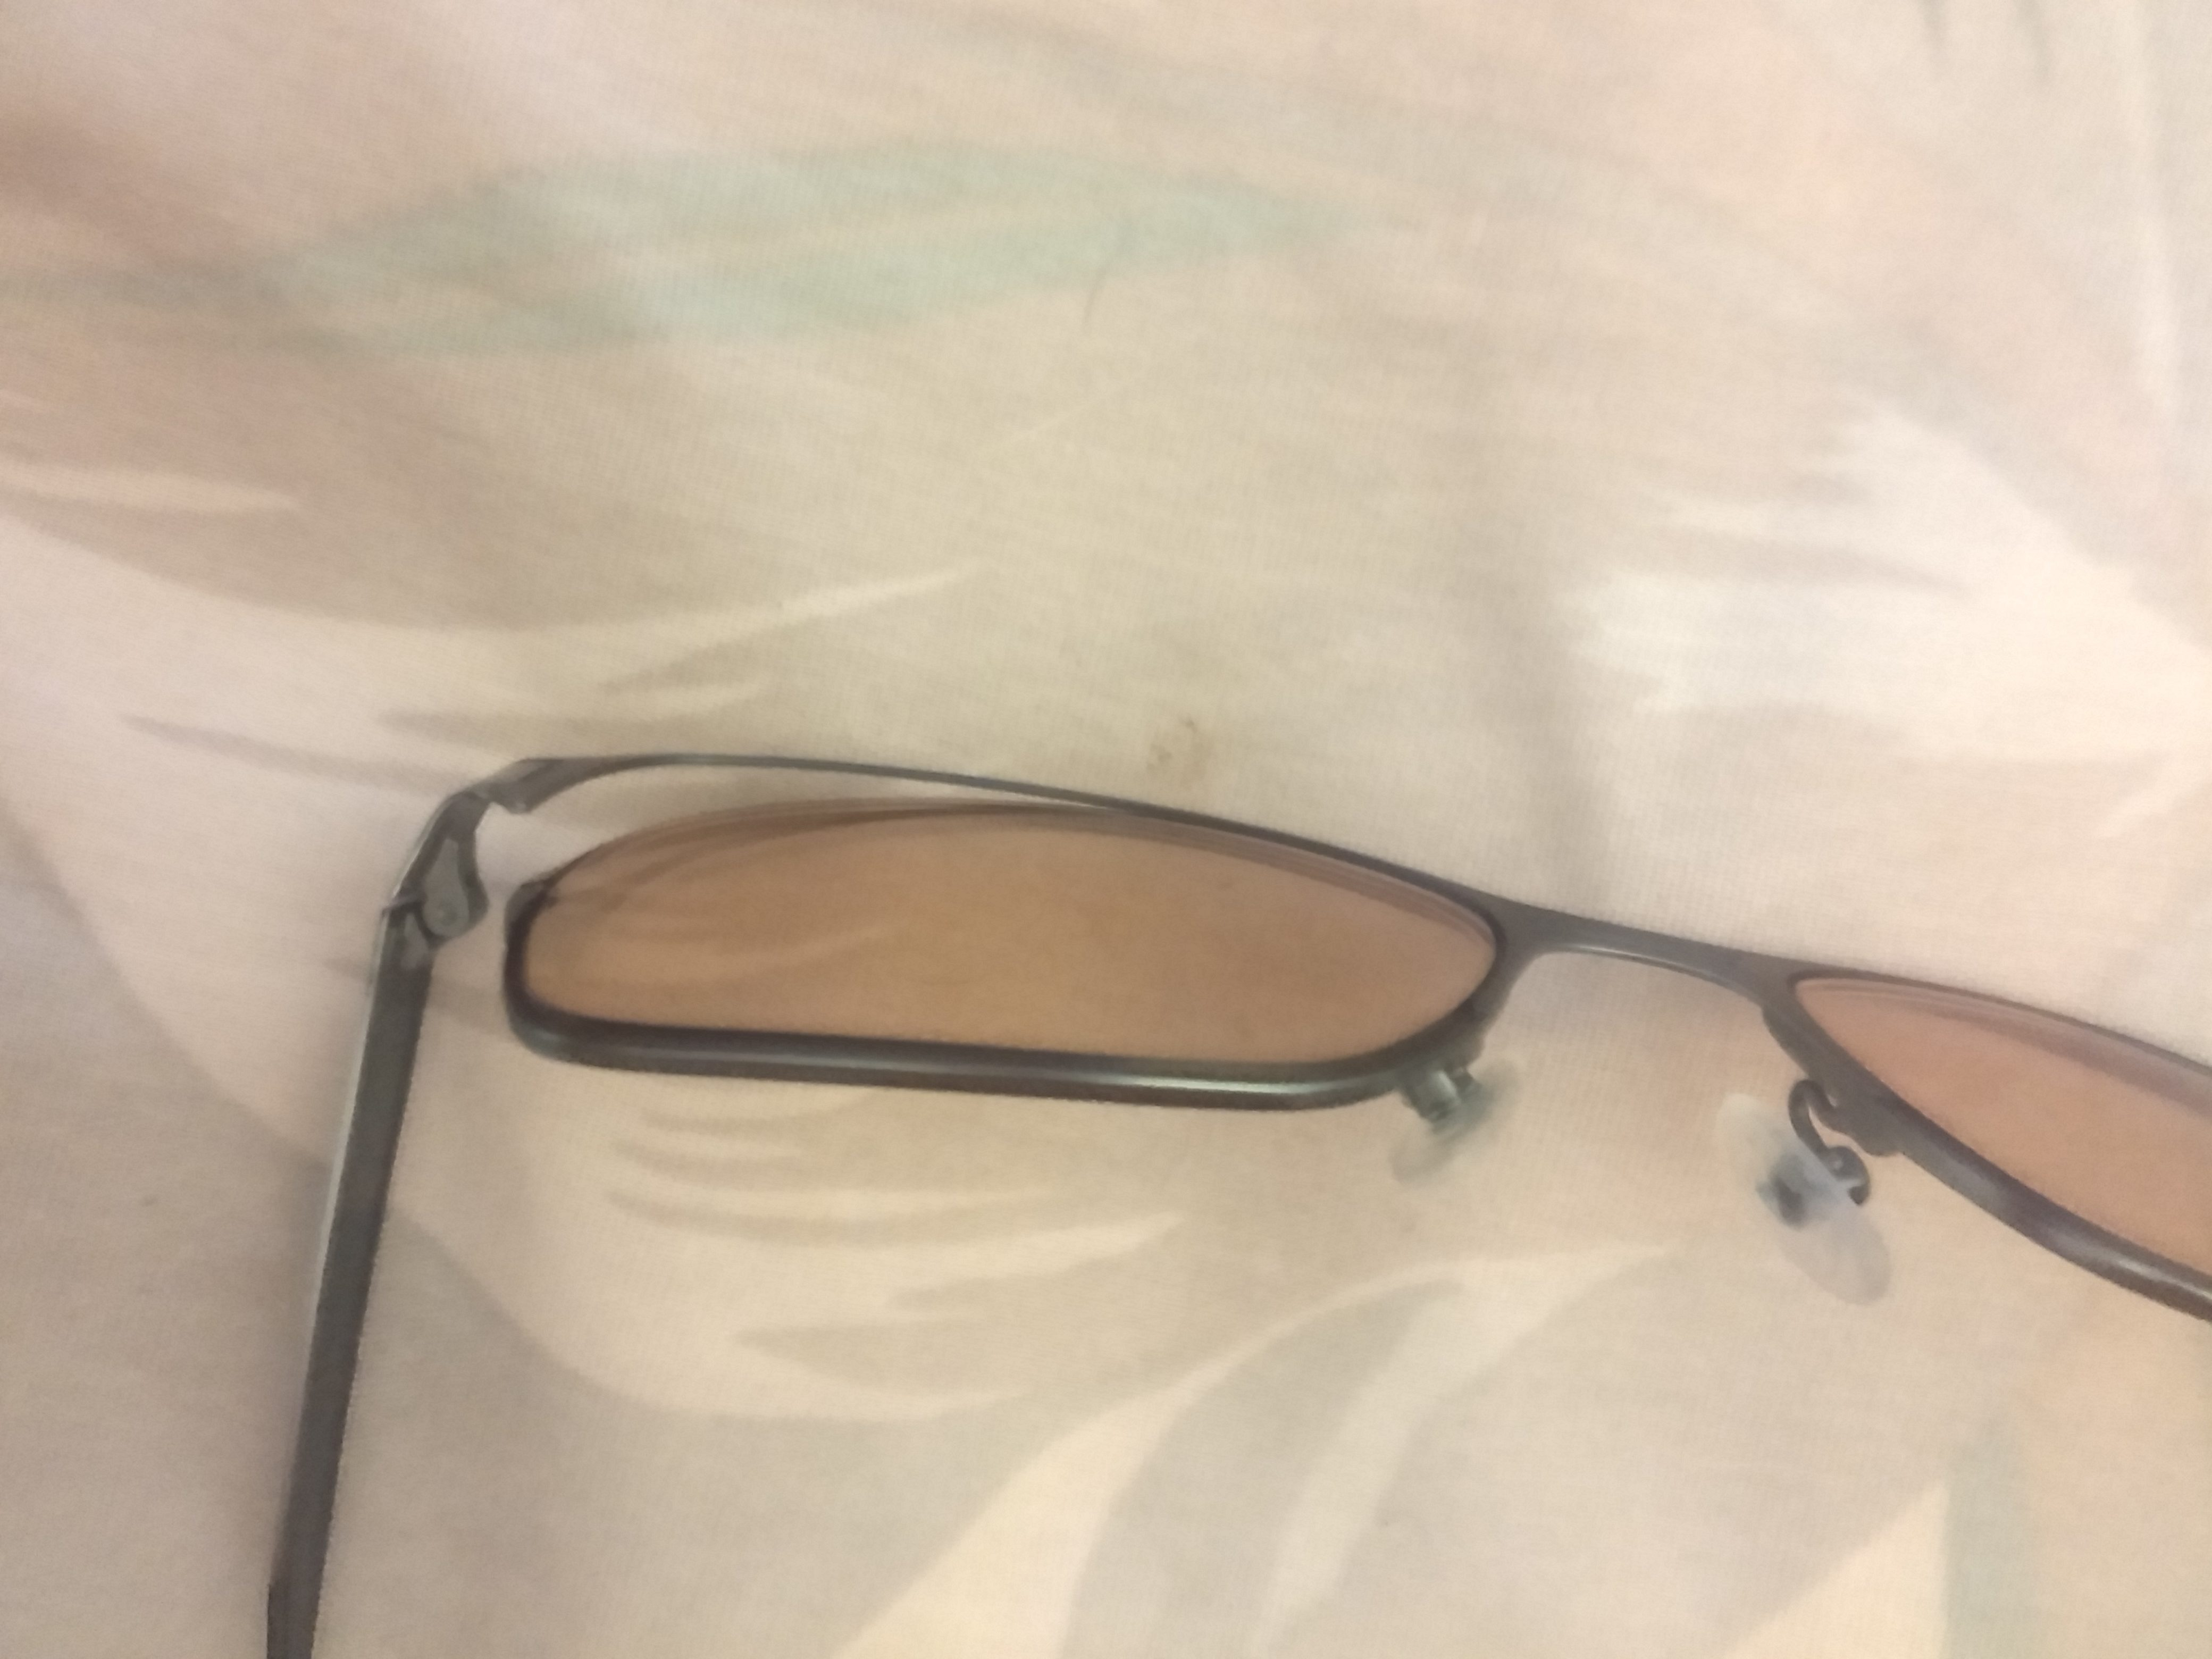 Zenni Optical Glasses Quality : Top 133 Complaints and Reviews about Zenni Optical Page 2